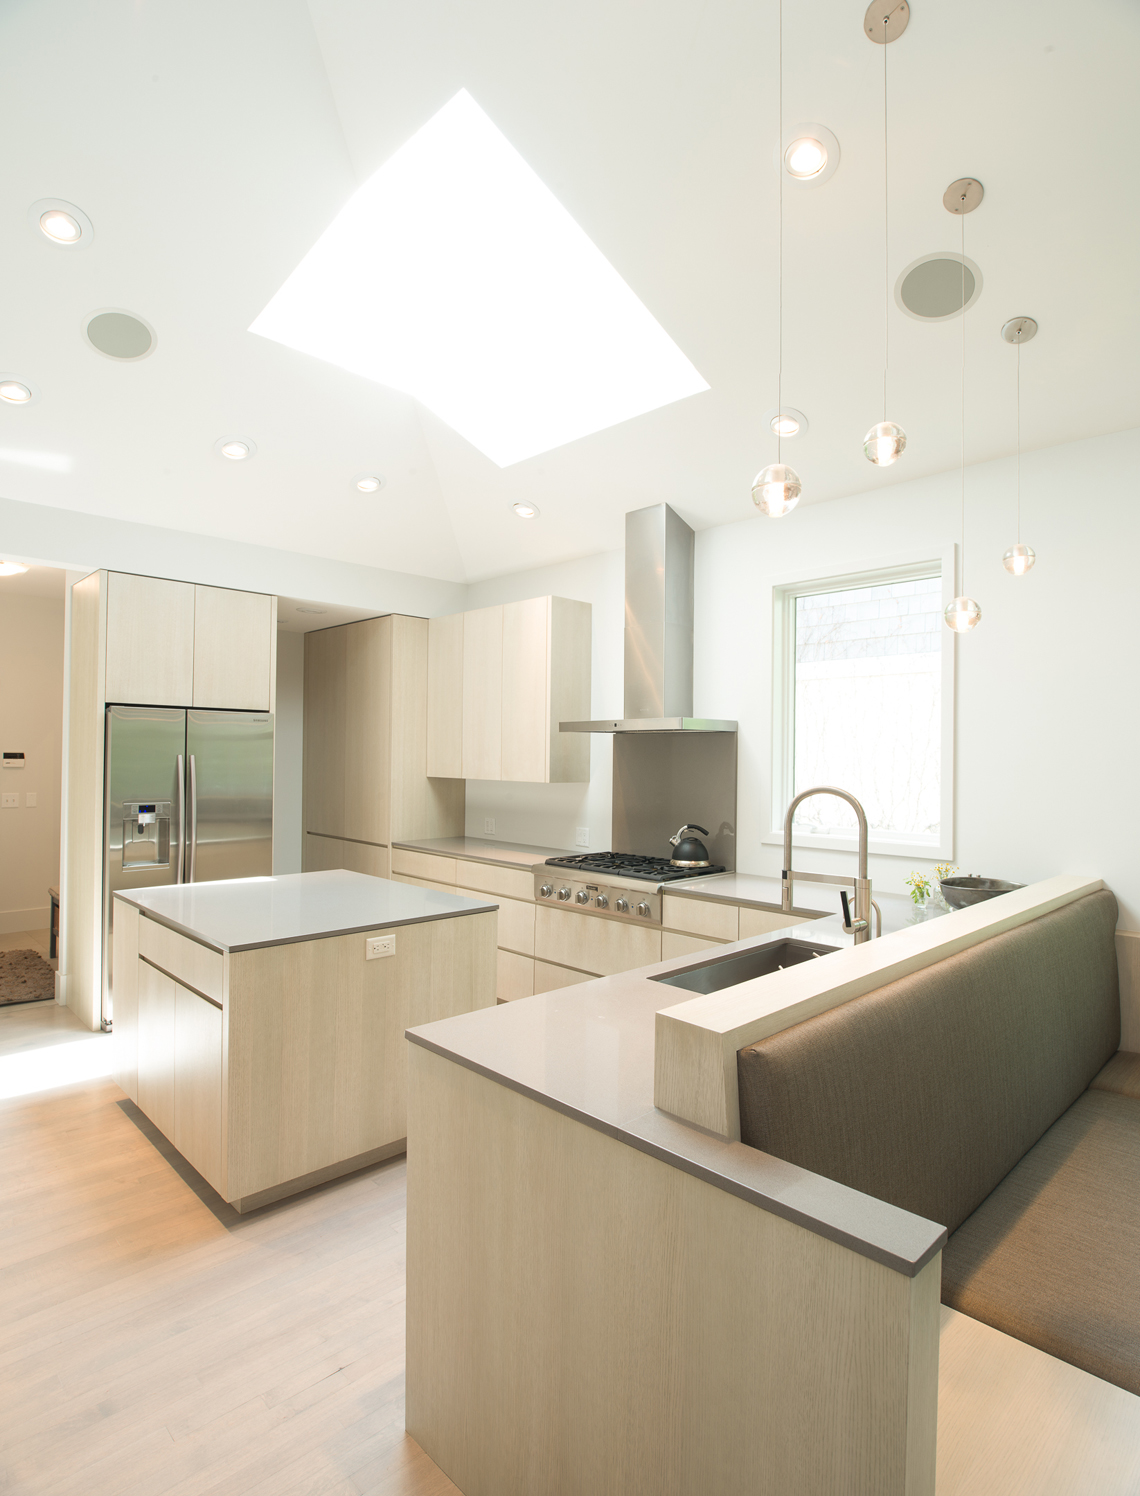 Modern minimal kitchen renovation with custom cabinetry and bench details